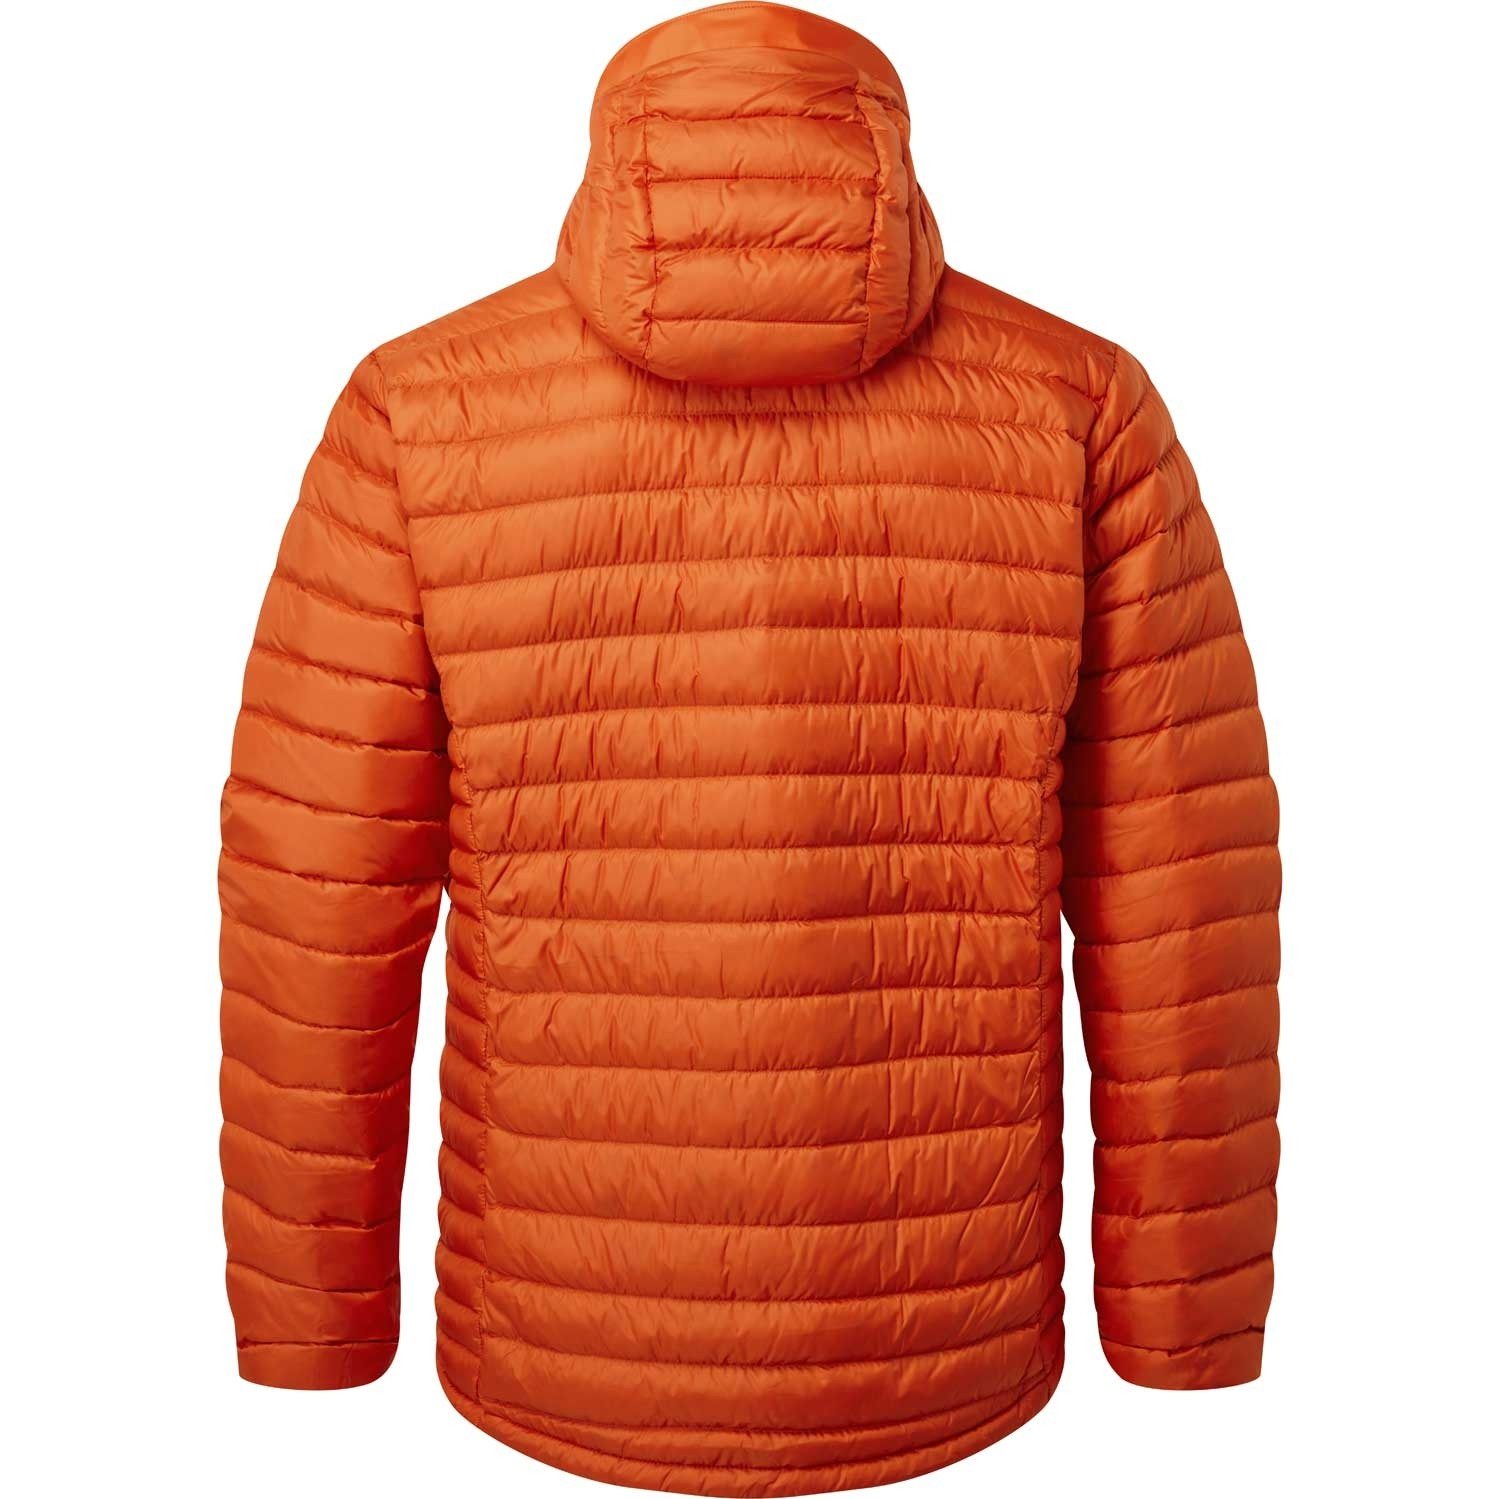 Microlight Alpine Down Jacket - Men's - Firecracker